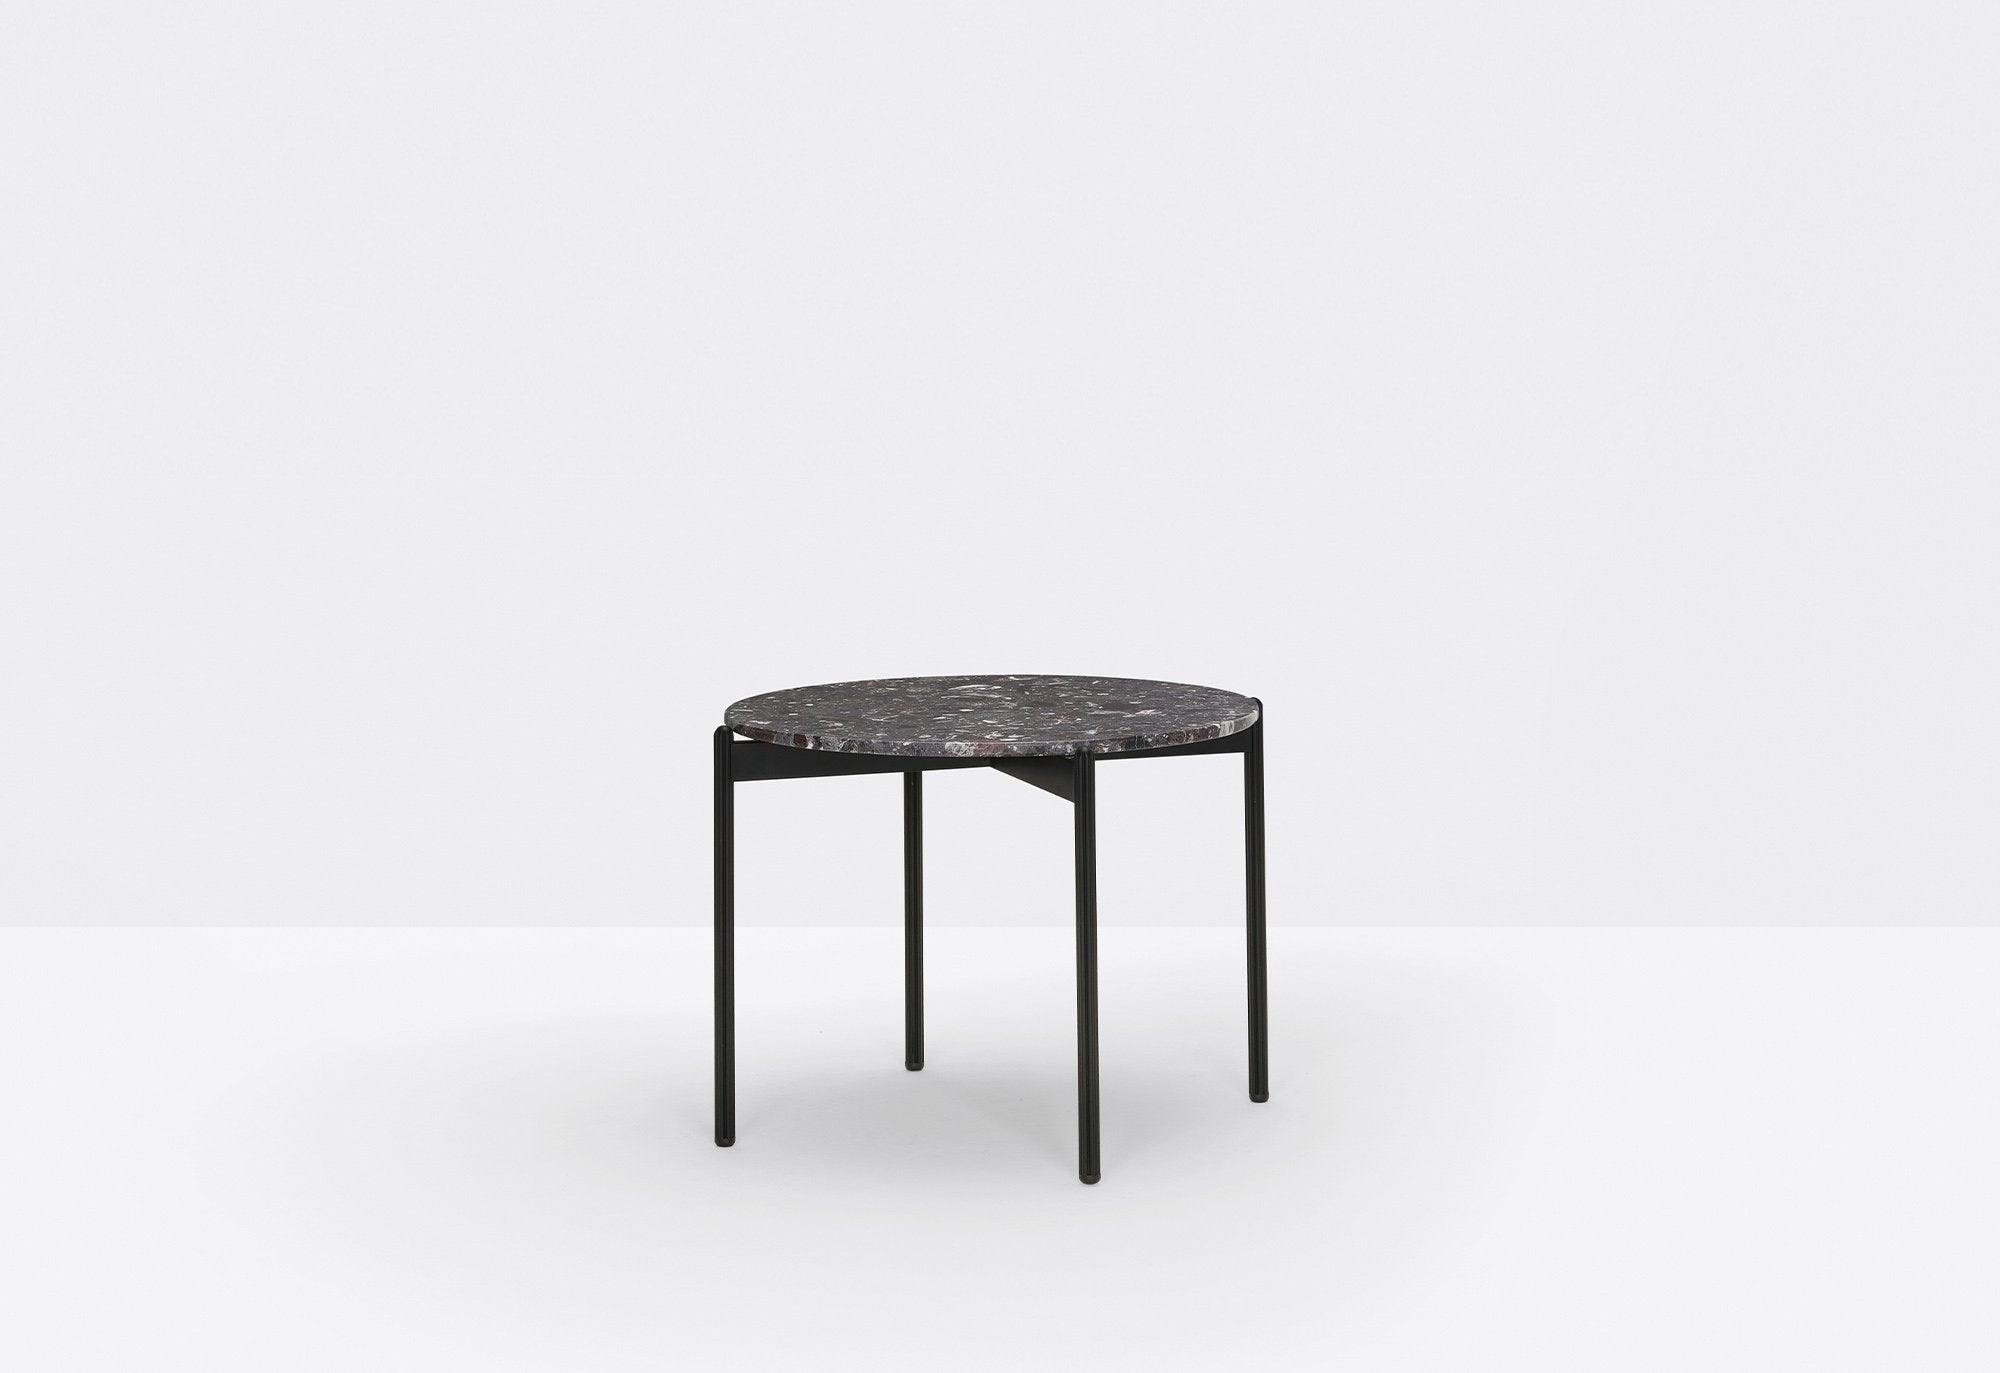 BLUME Table 49 - Interra Designs PO